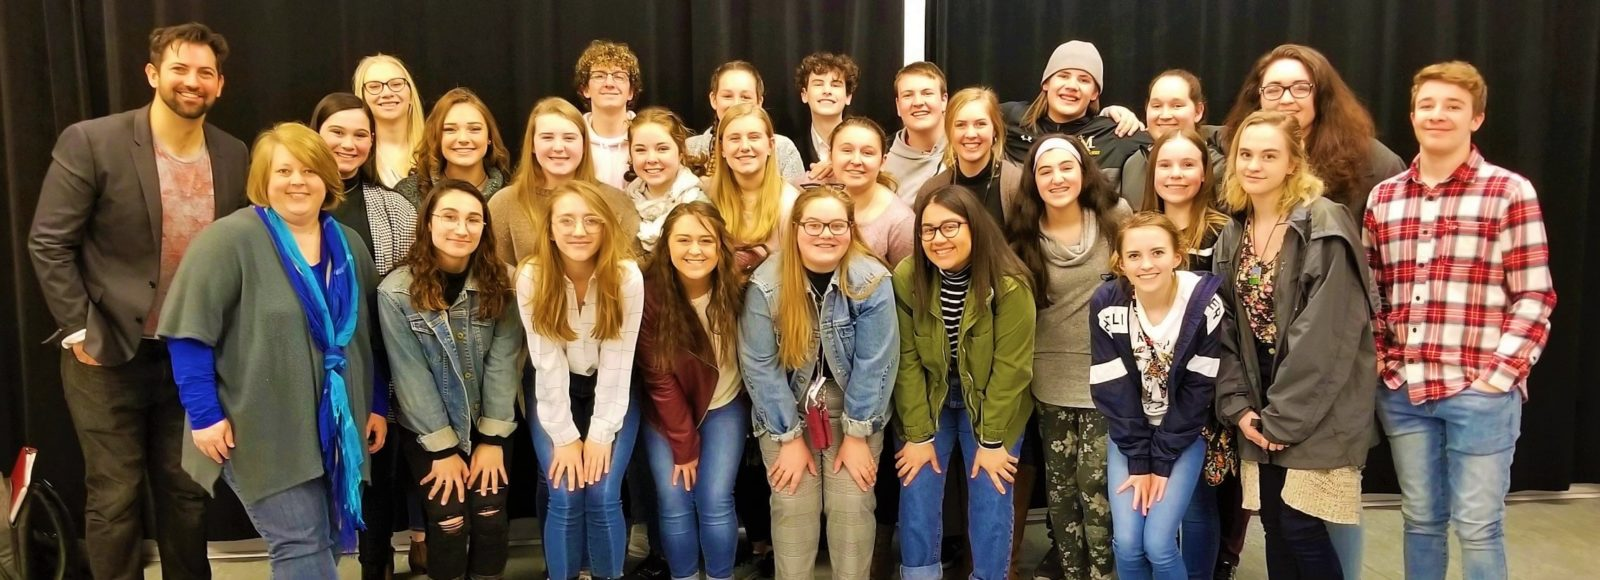 PMEF endowment funds student trip to see Broadway show